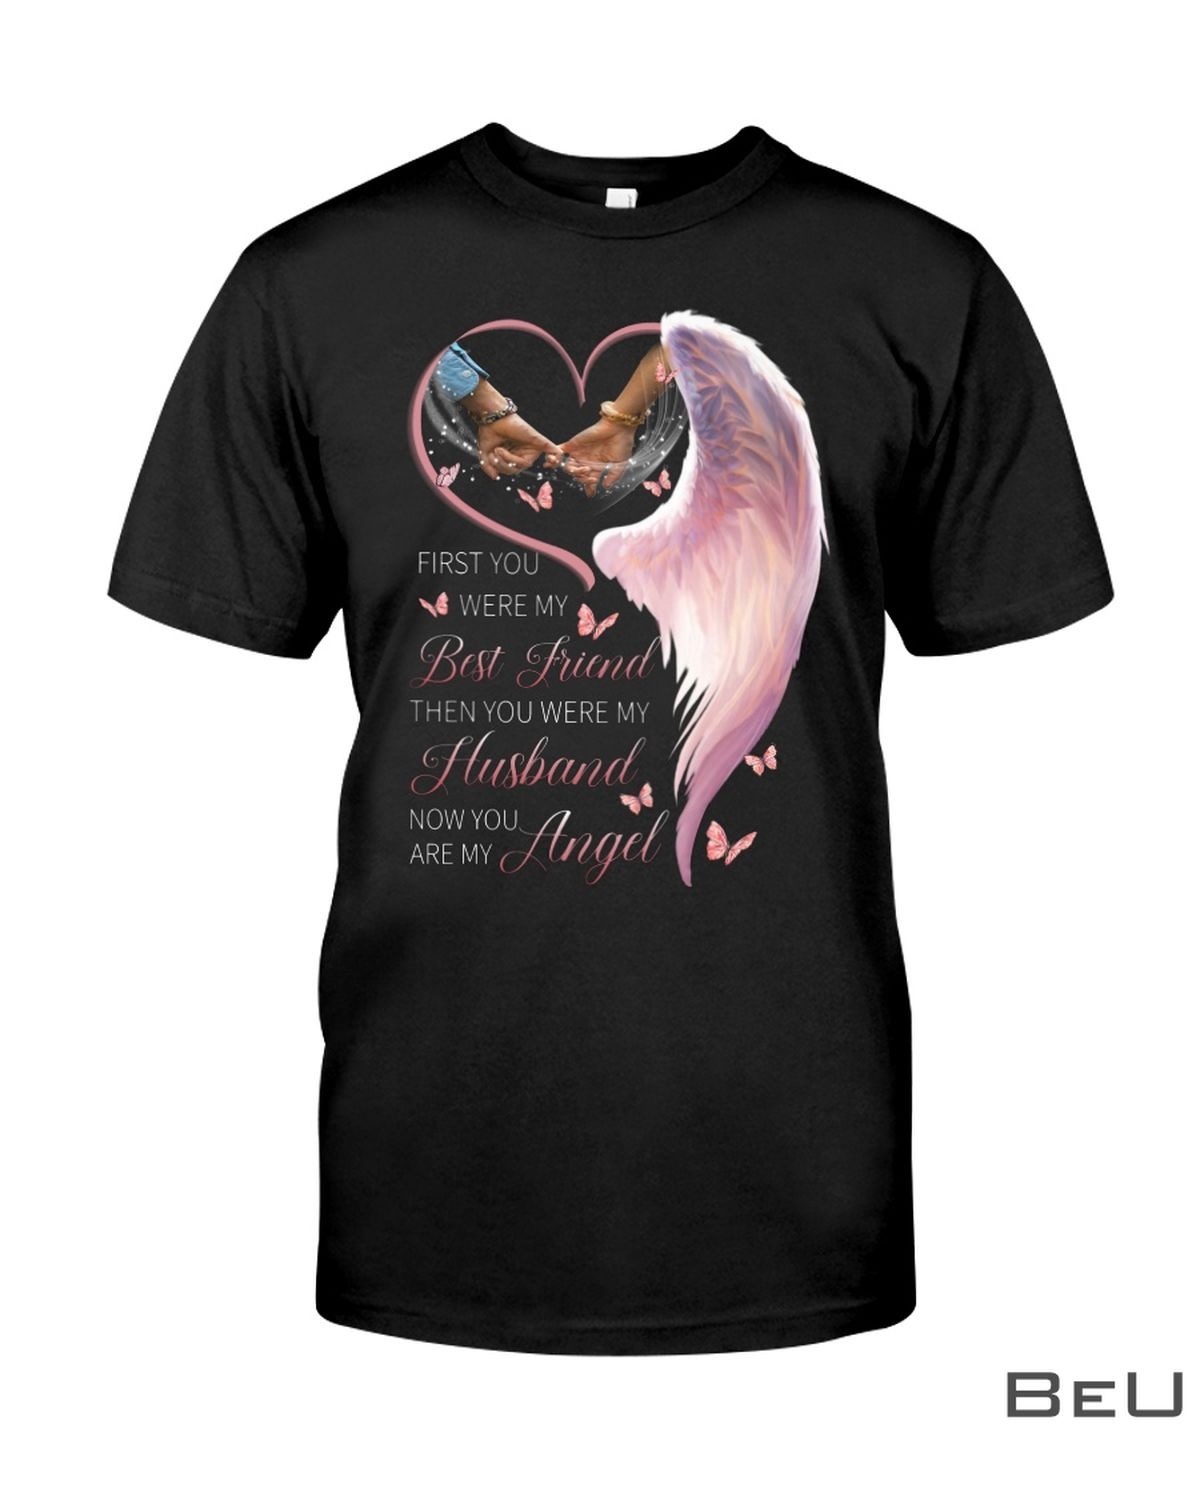 First You Were My Best Friend Then You Were My Husband Now You Are My Angel Shirt